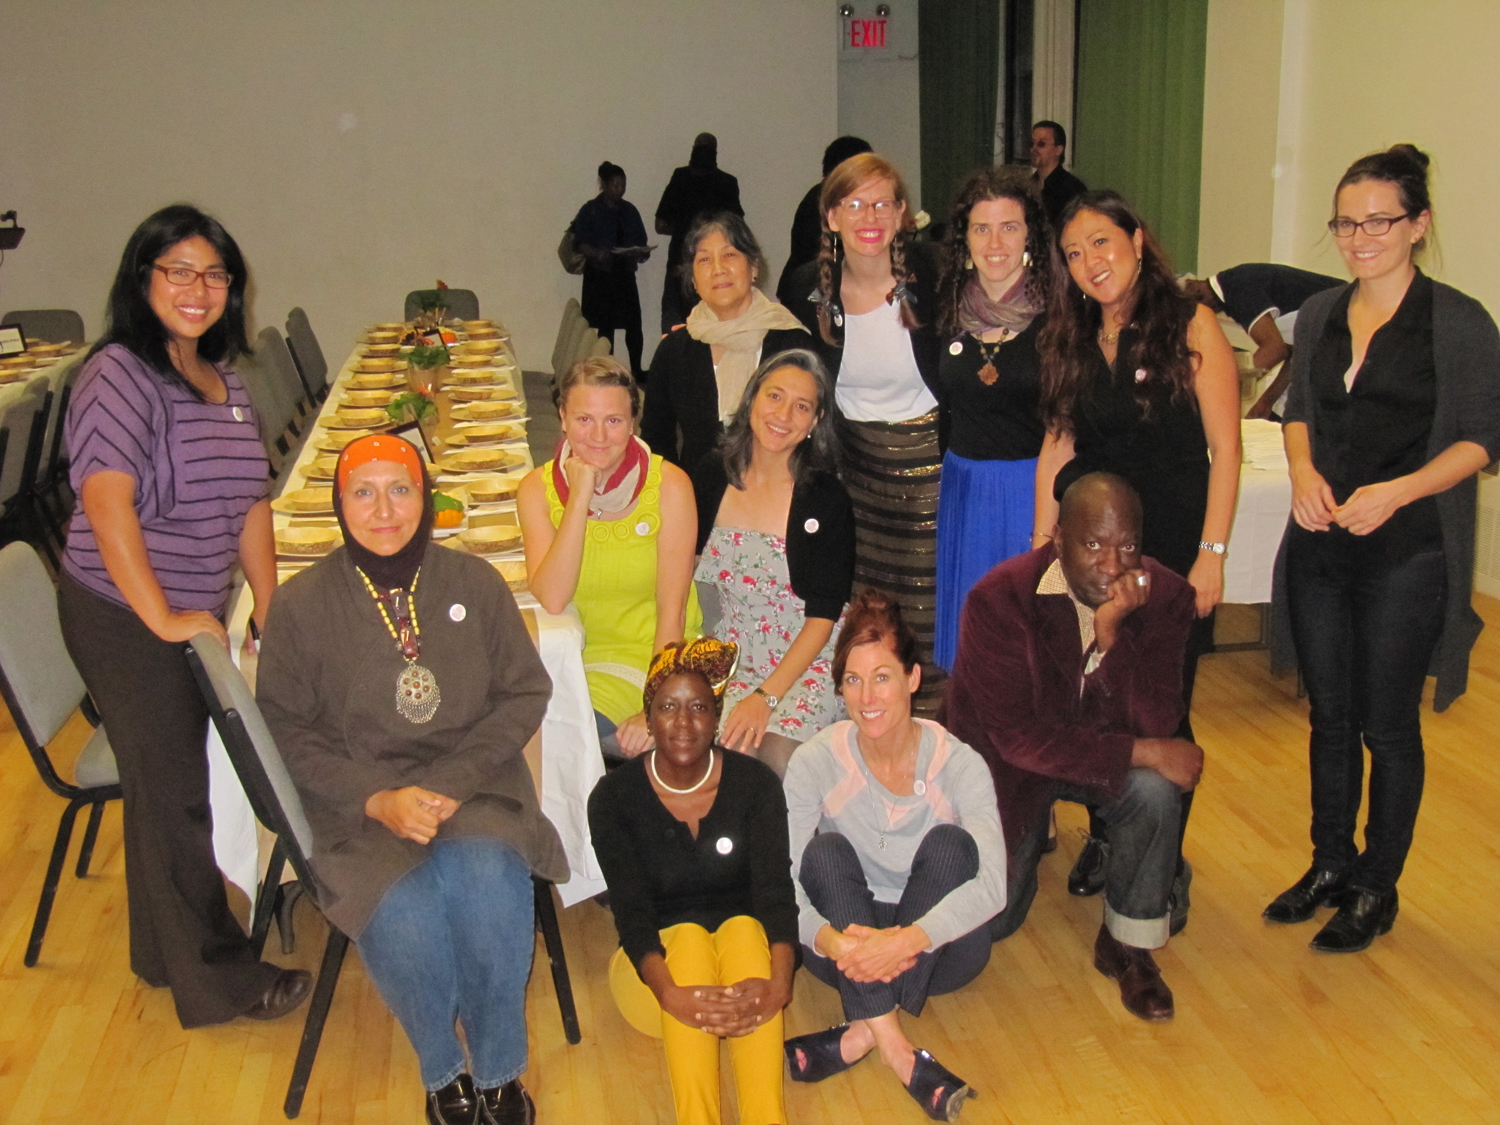 The Laundromat Project Create Change cohort, 2012   http://laundromatproject.org/tomie-arai-betty-yu/